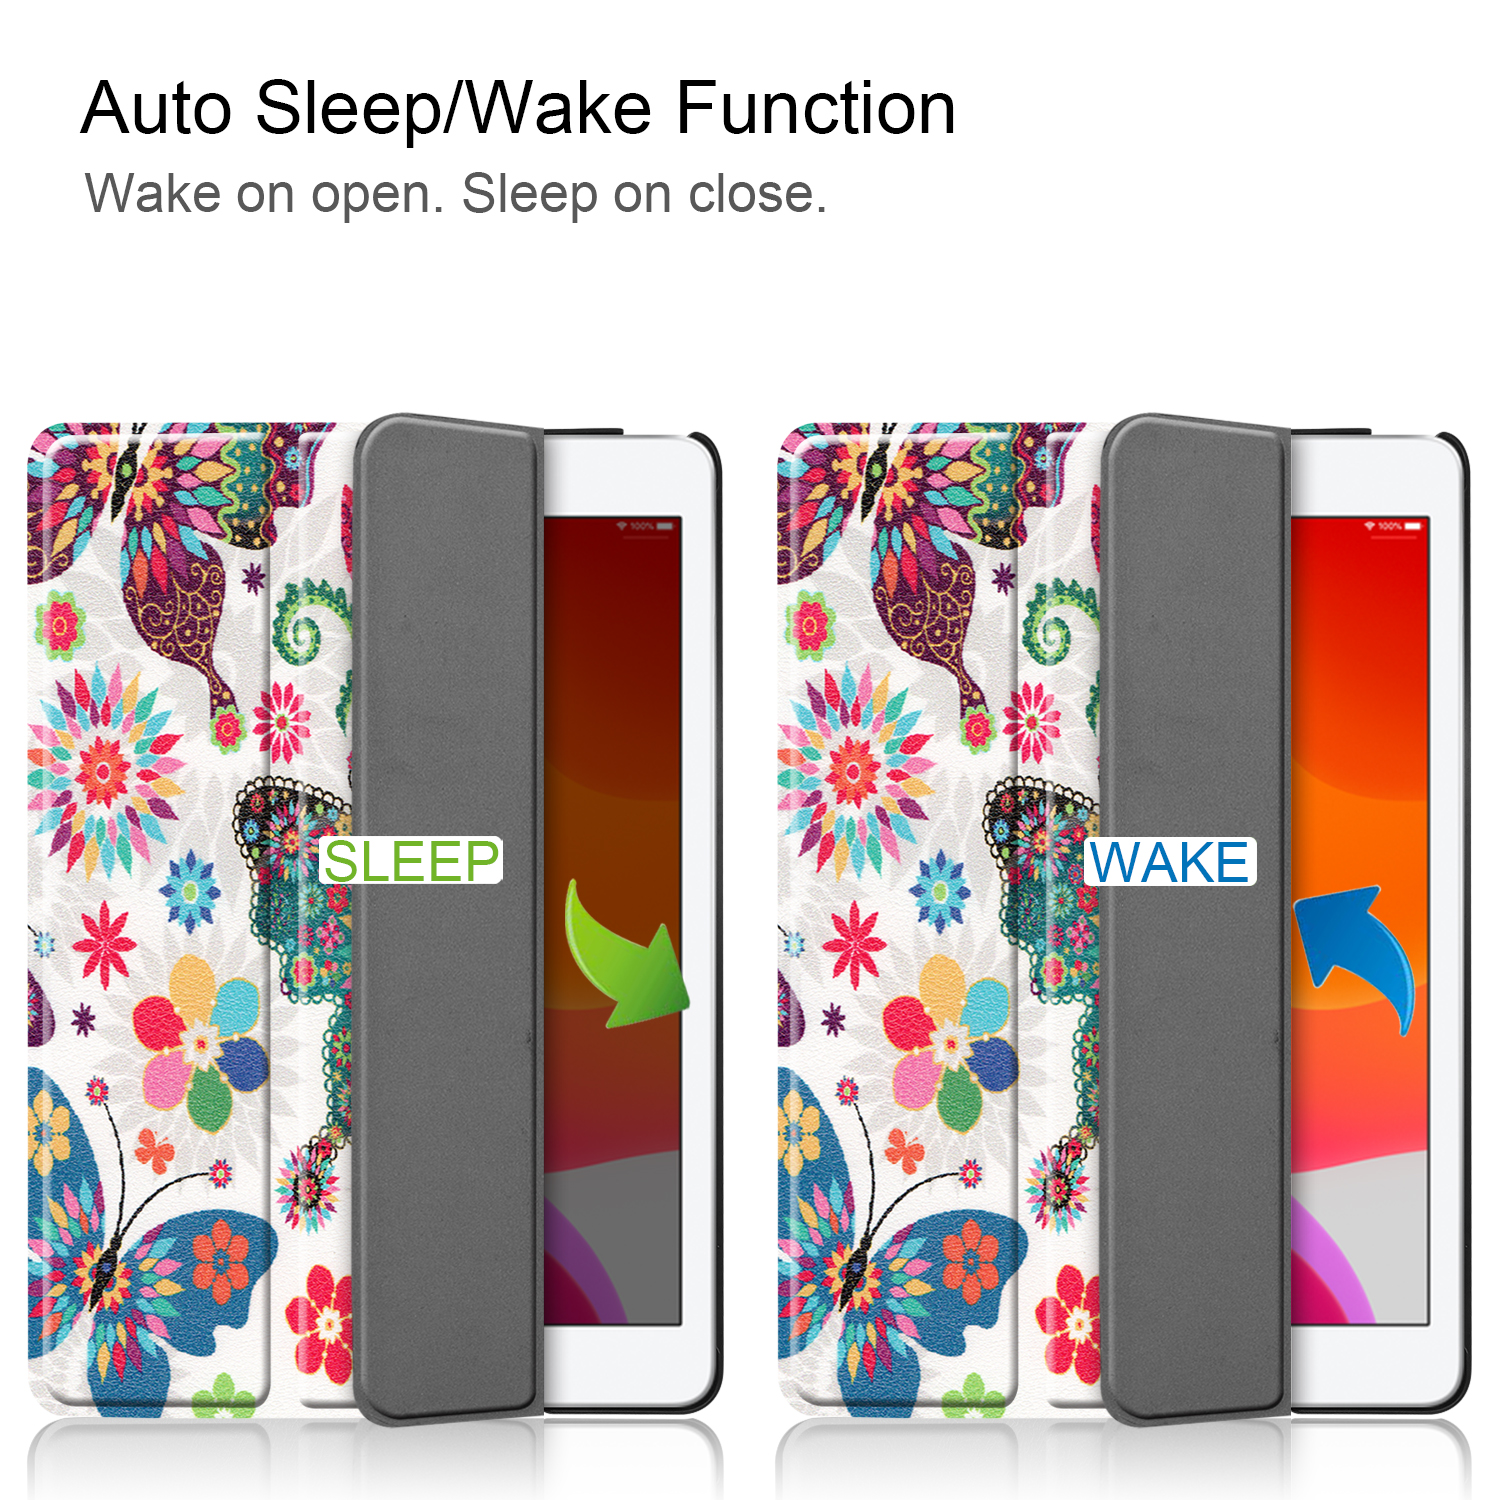 A2428/a2429 iPad Smart-Cover Magnetic Apple Sleep 8-8th-Generation iPad/8th/Cas for Case